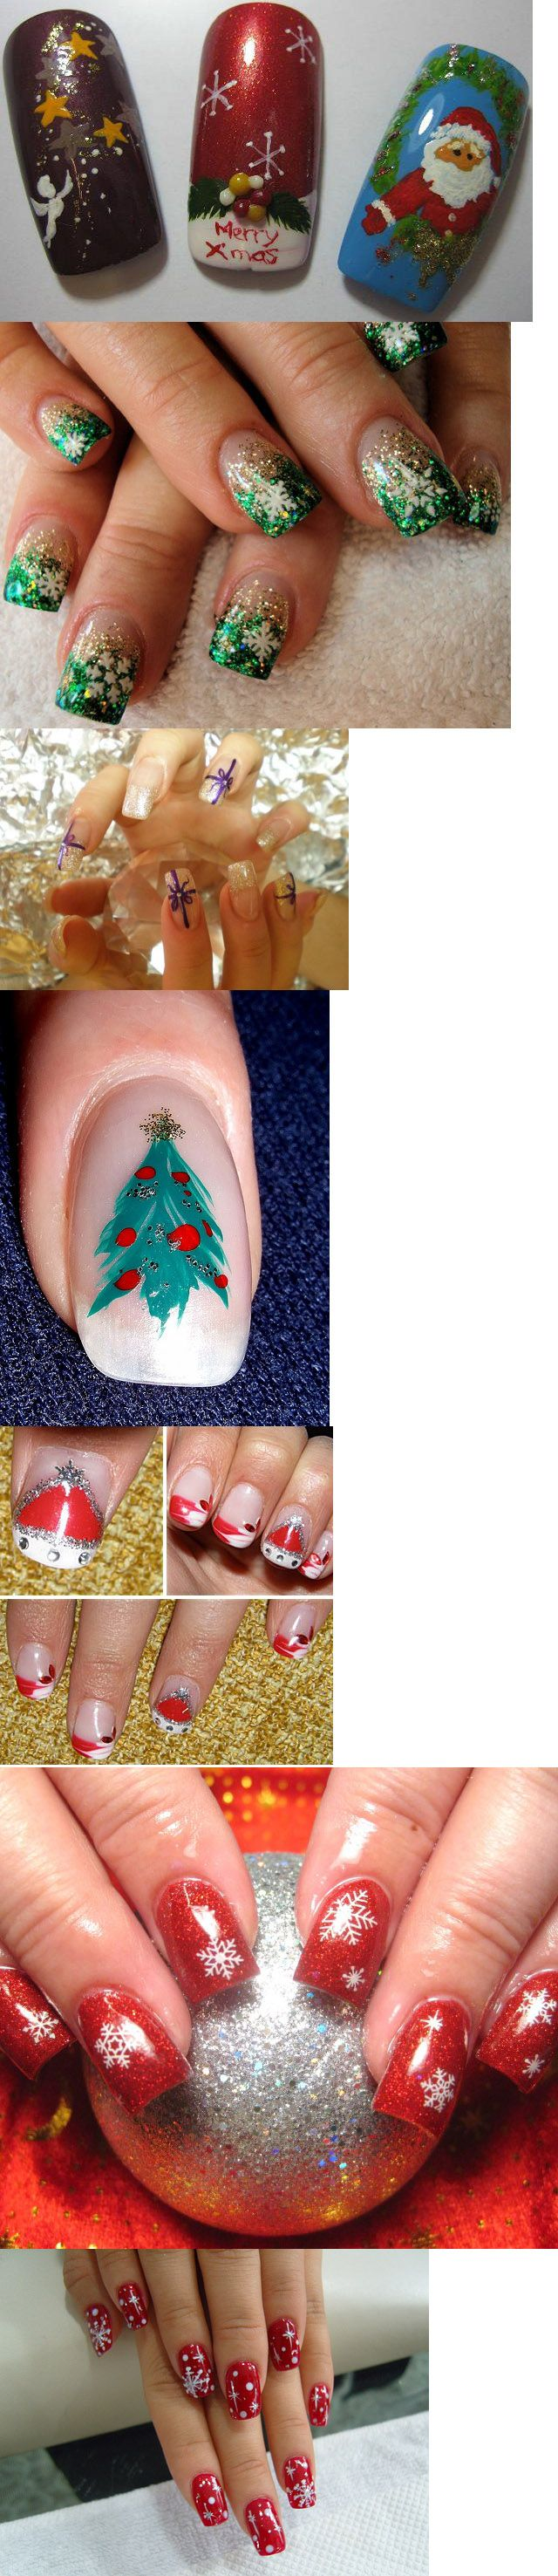 24 best Christmas nail art images on Pinterest | Christmas nails ...